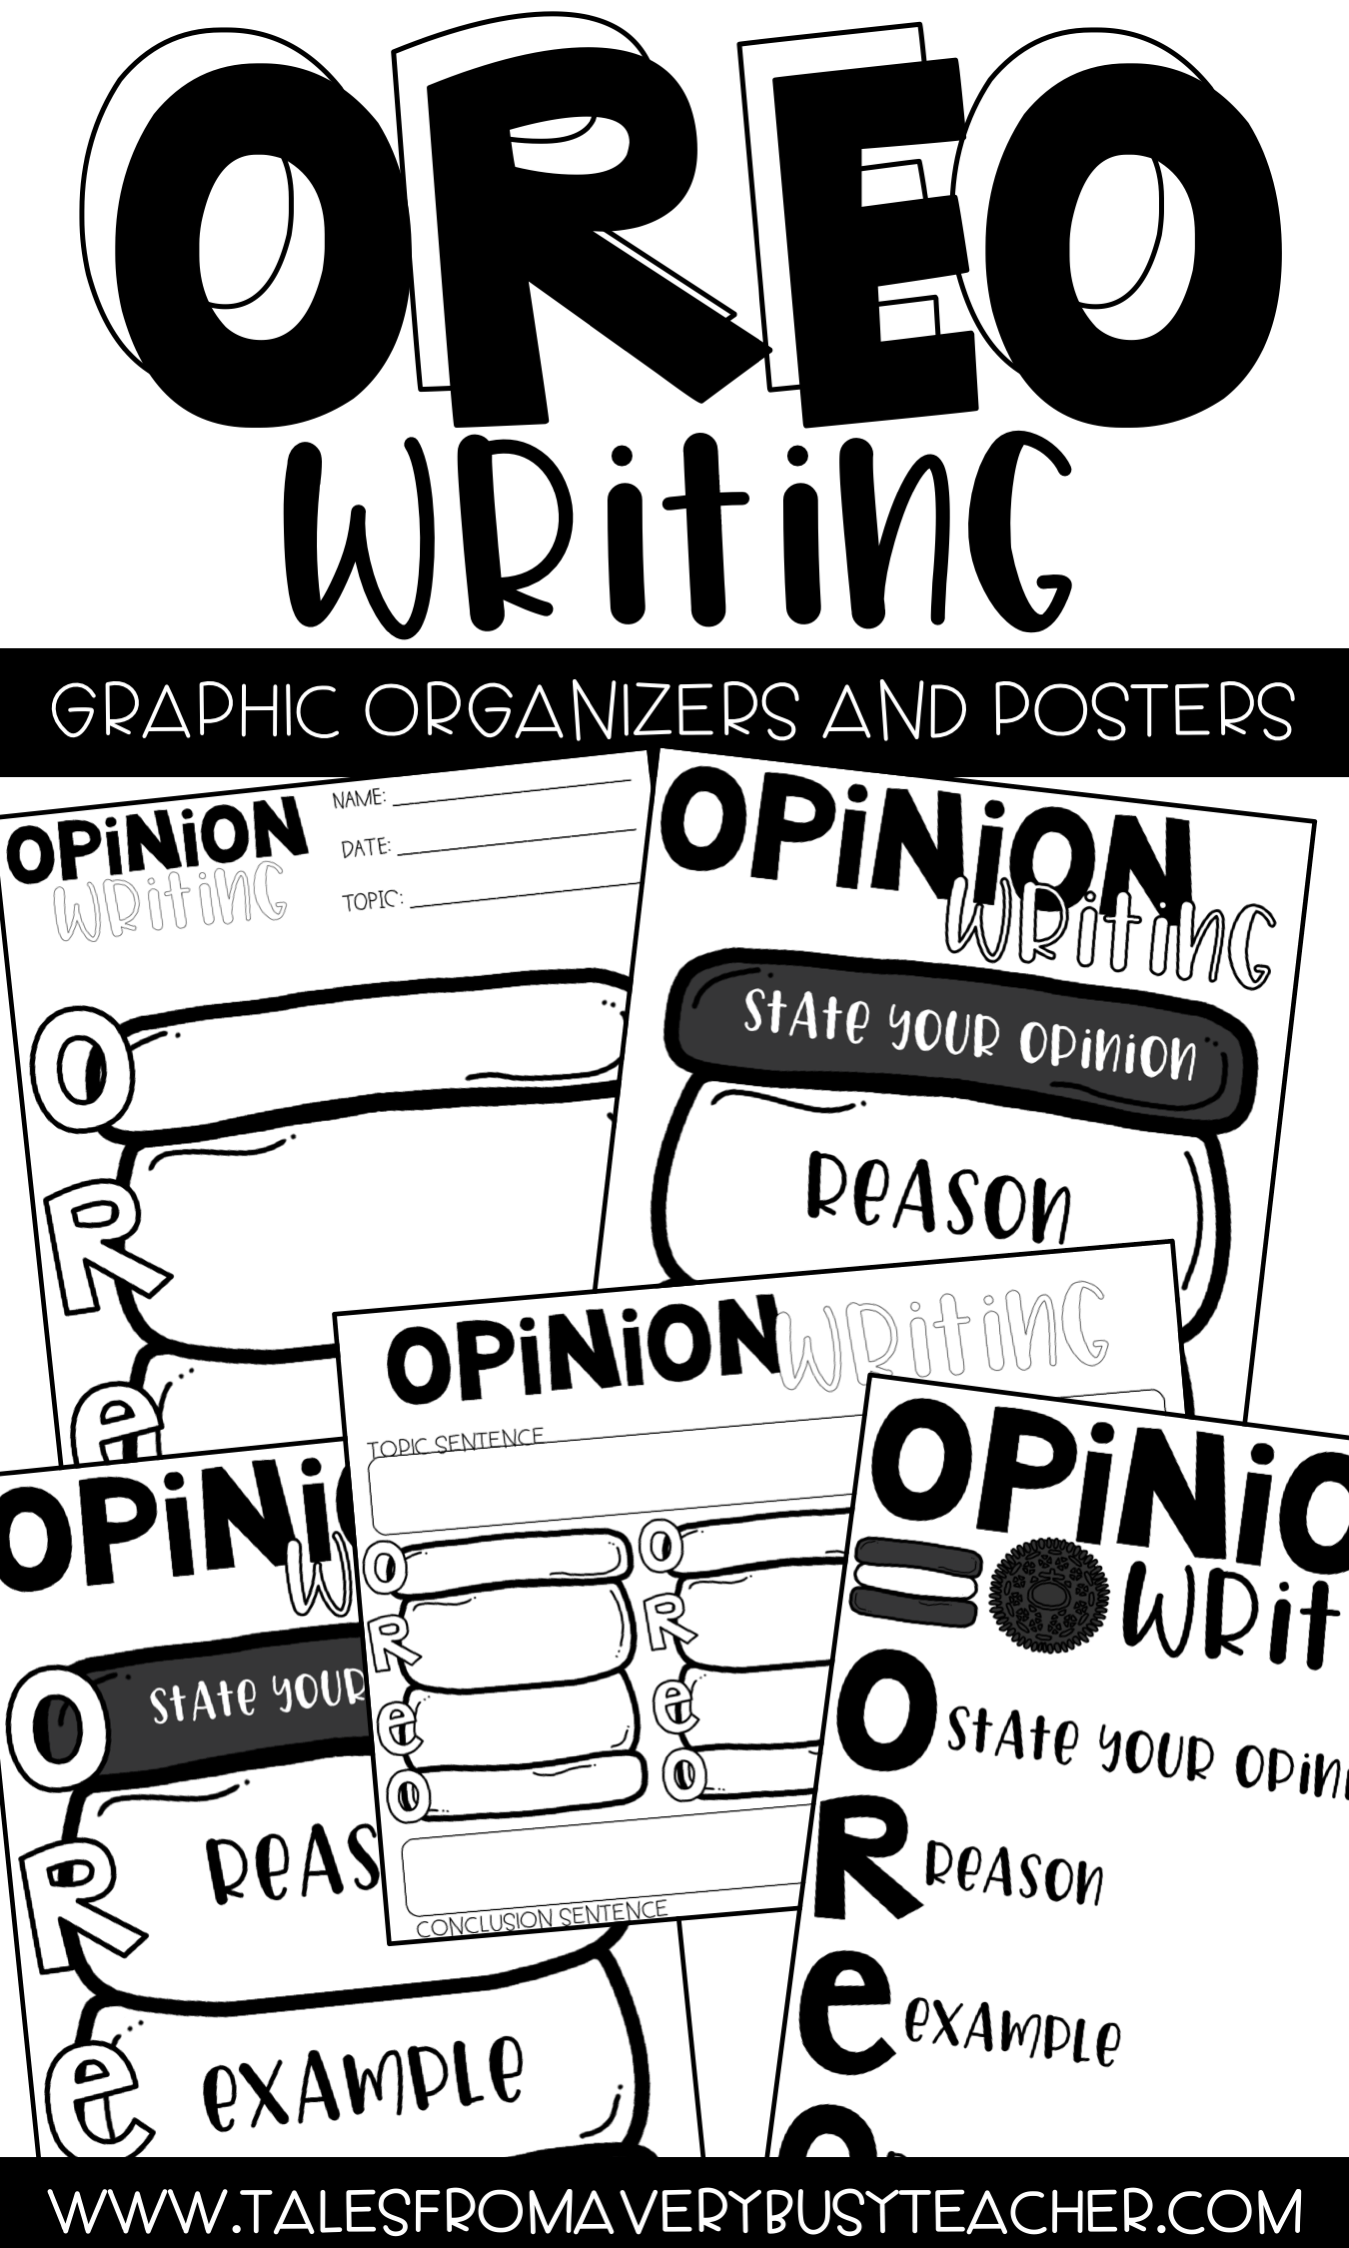 Opinion Writing Posters And Graphic Organizer Oreo